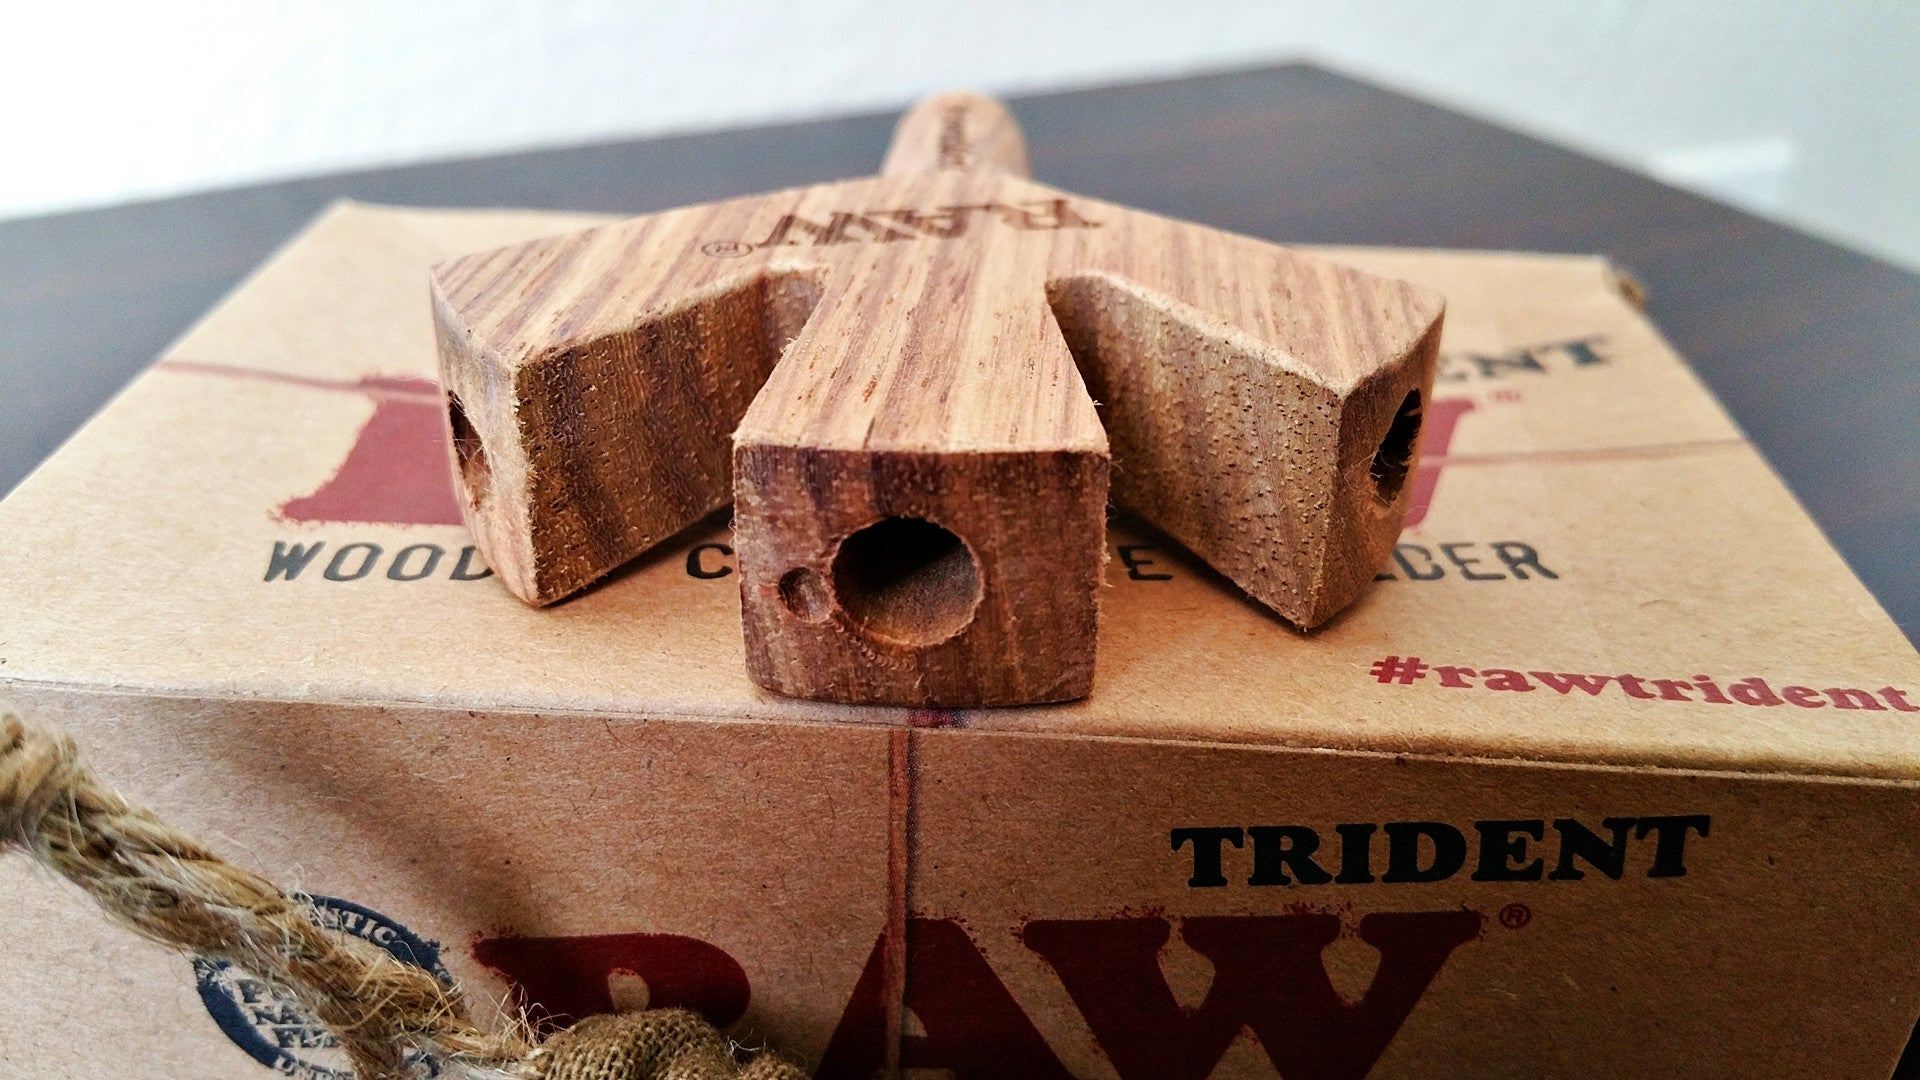 Trident Wooden Cigarette Holder